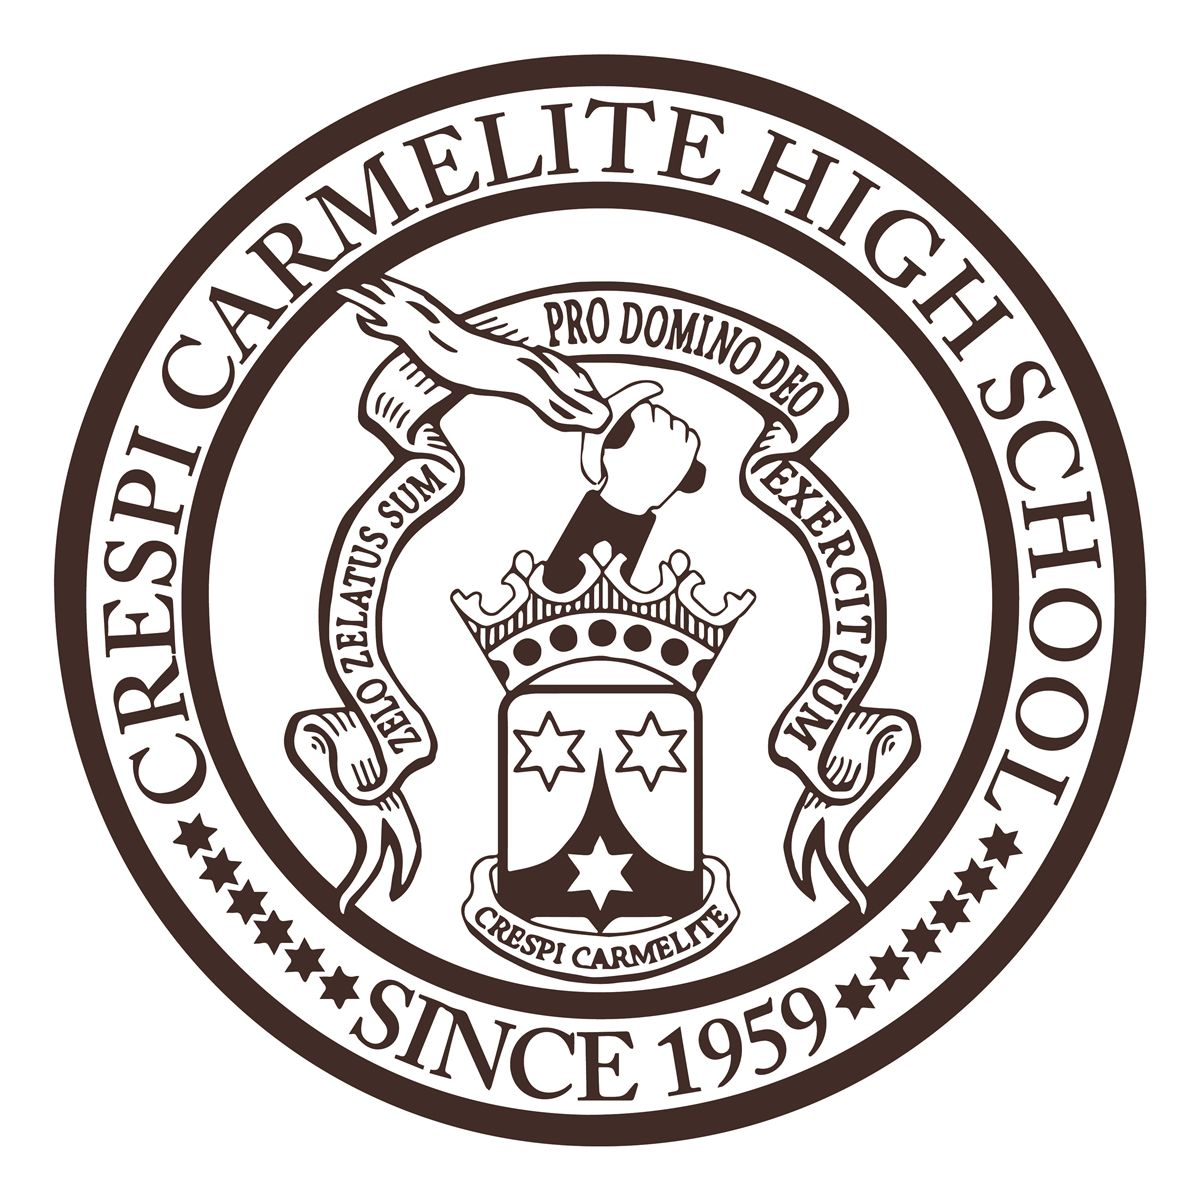 Crespi Carmelite High School